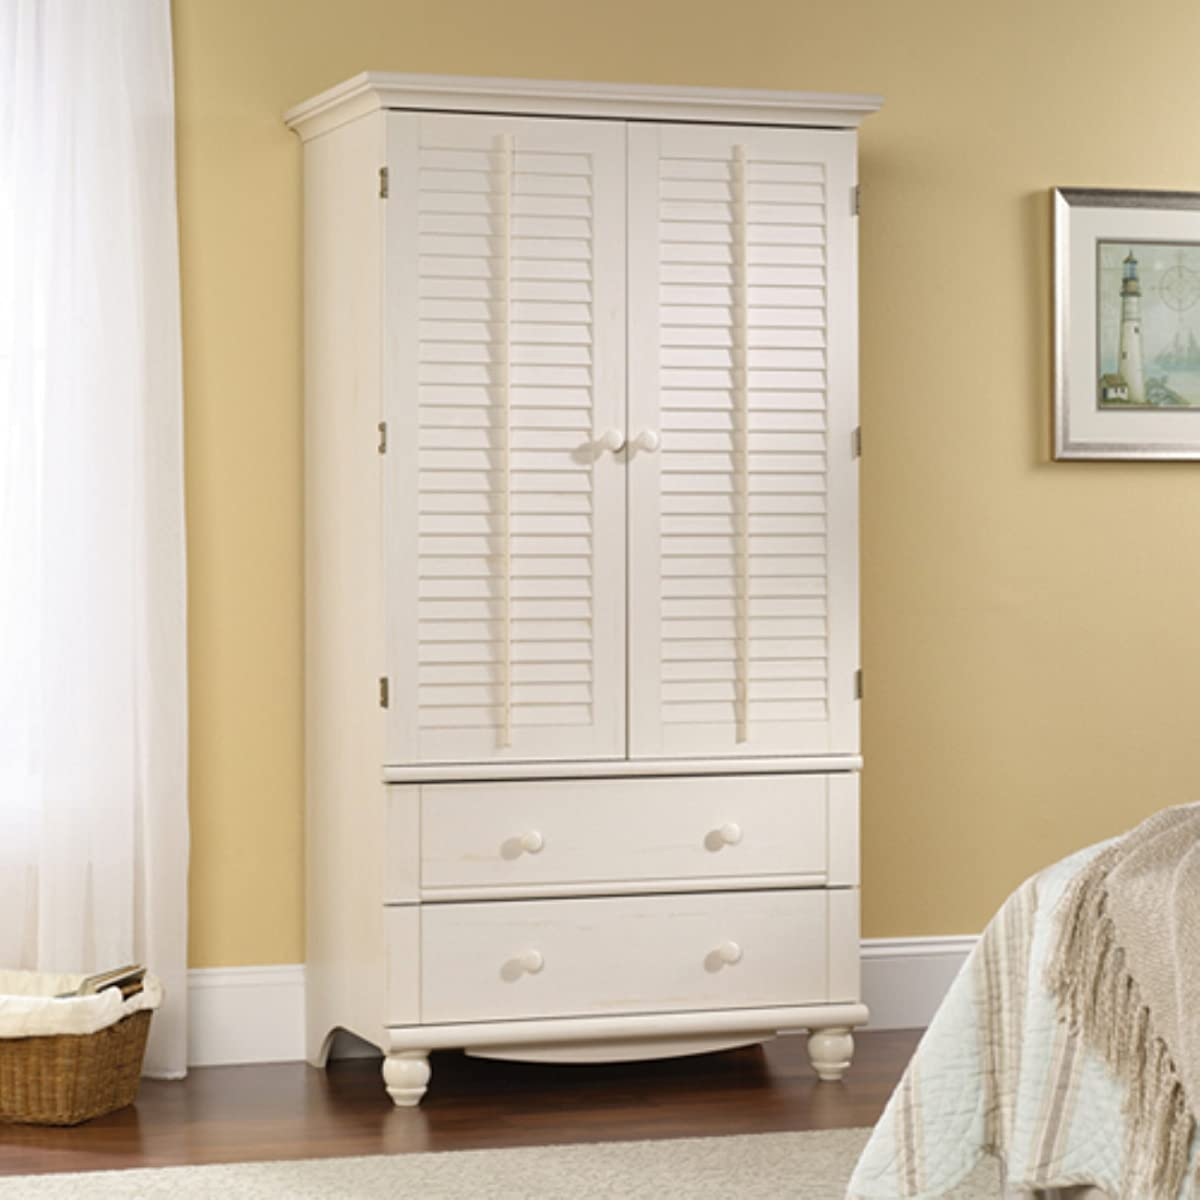 Sauder 158036 Antiqued White Finish Harbor View Armoire